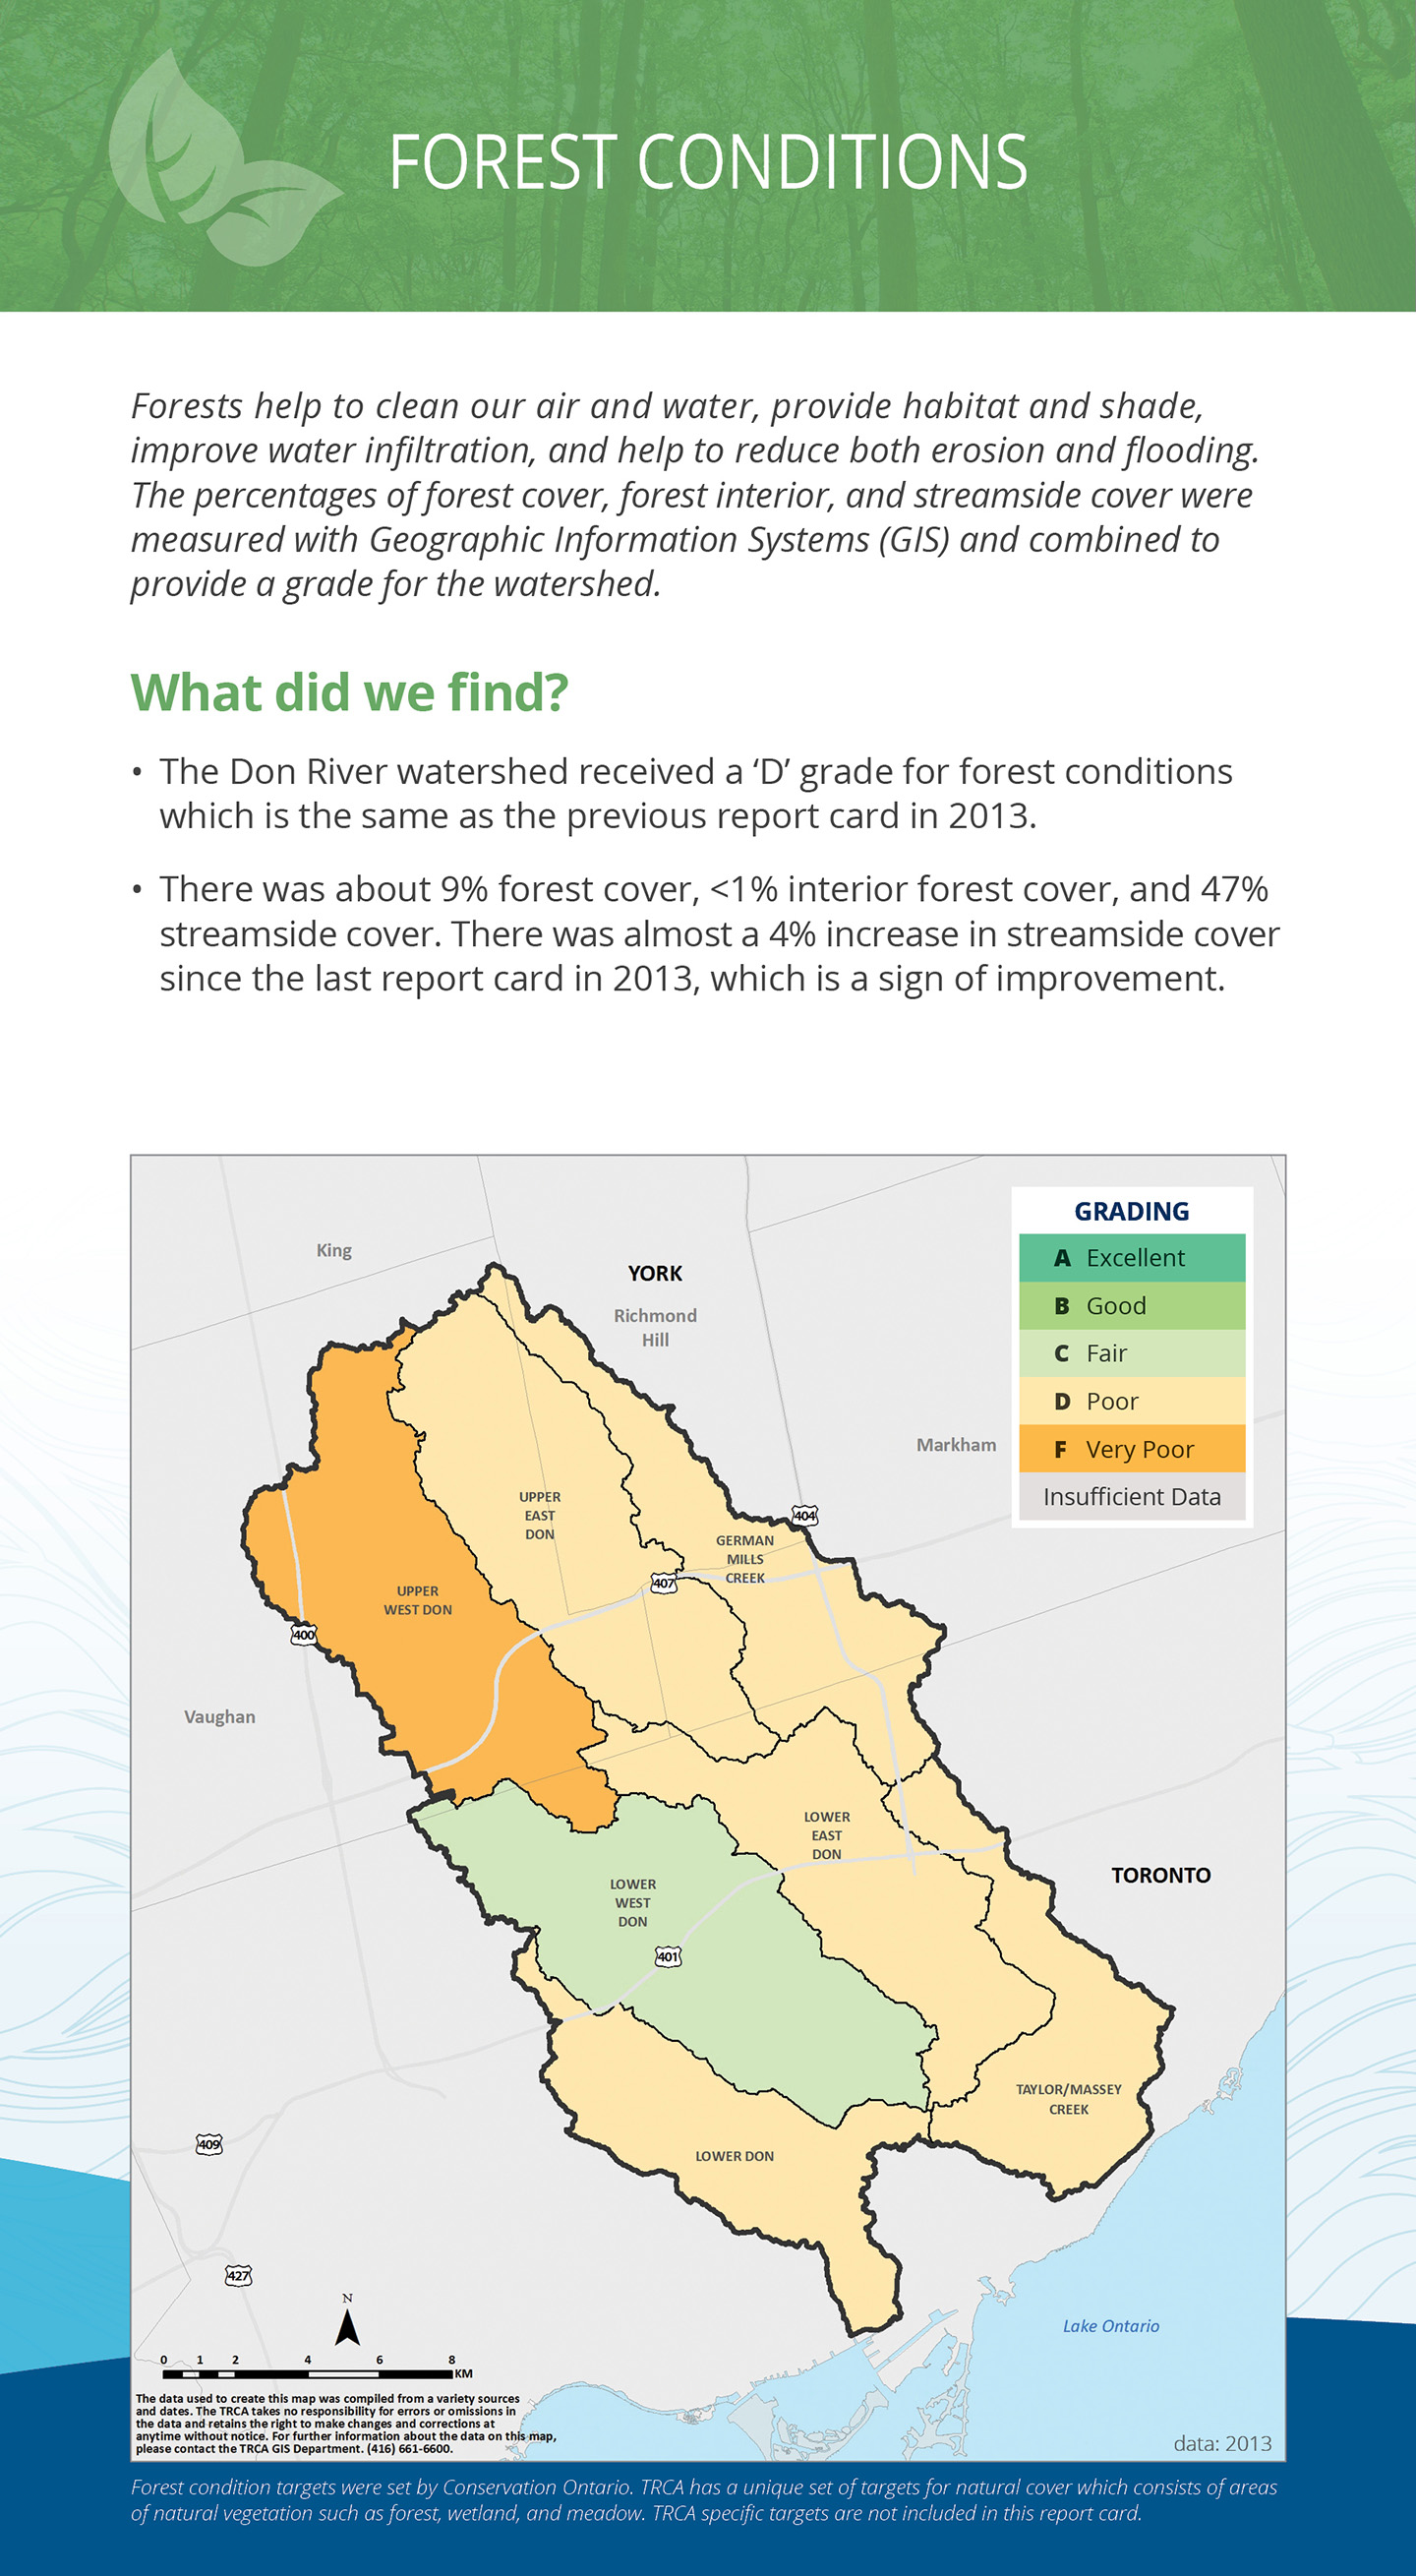 forest conditions panel of Don River watershed report card